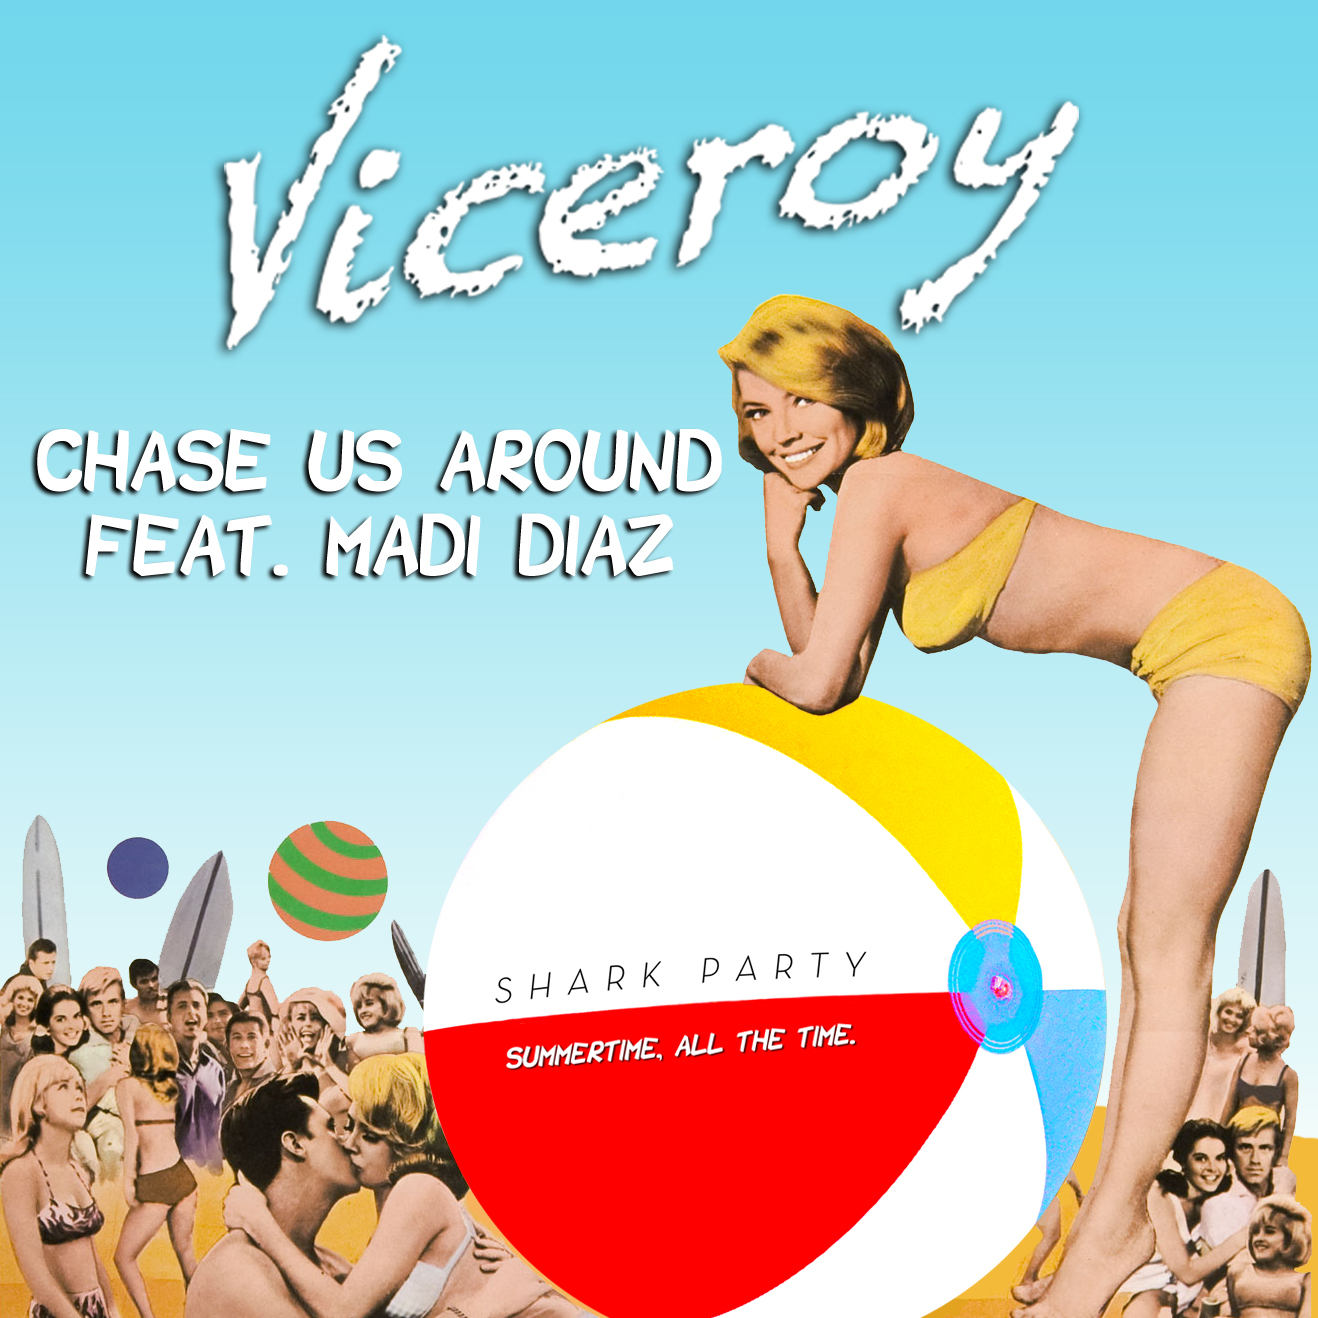 Viceroy – Chase Us Around feat. Madi Diaz